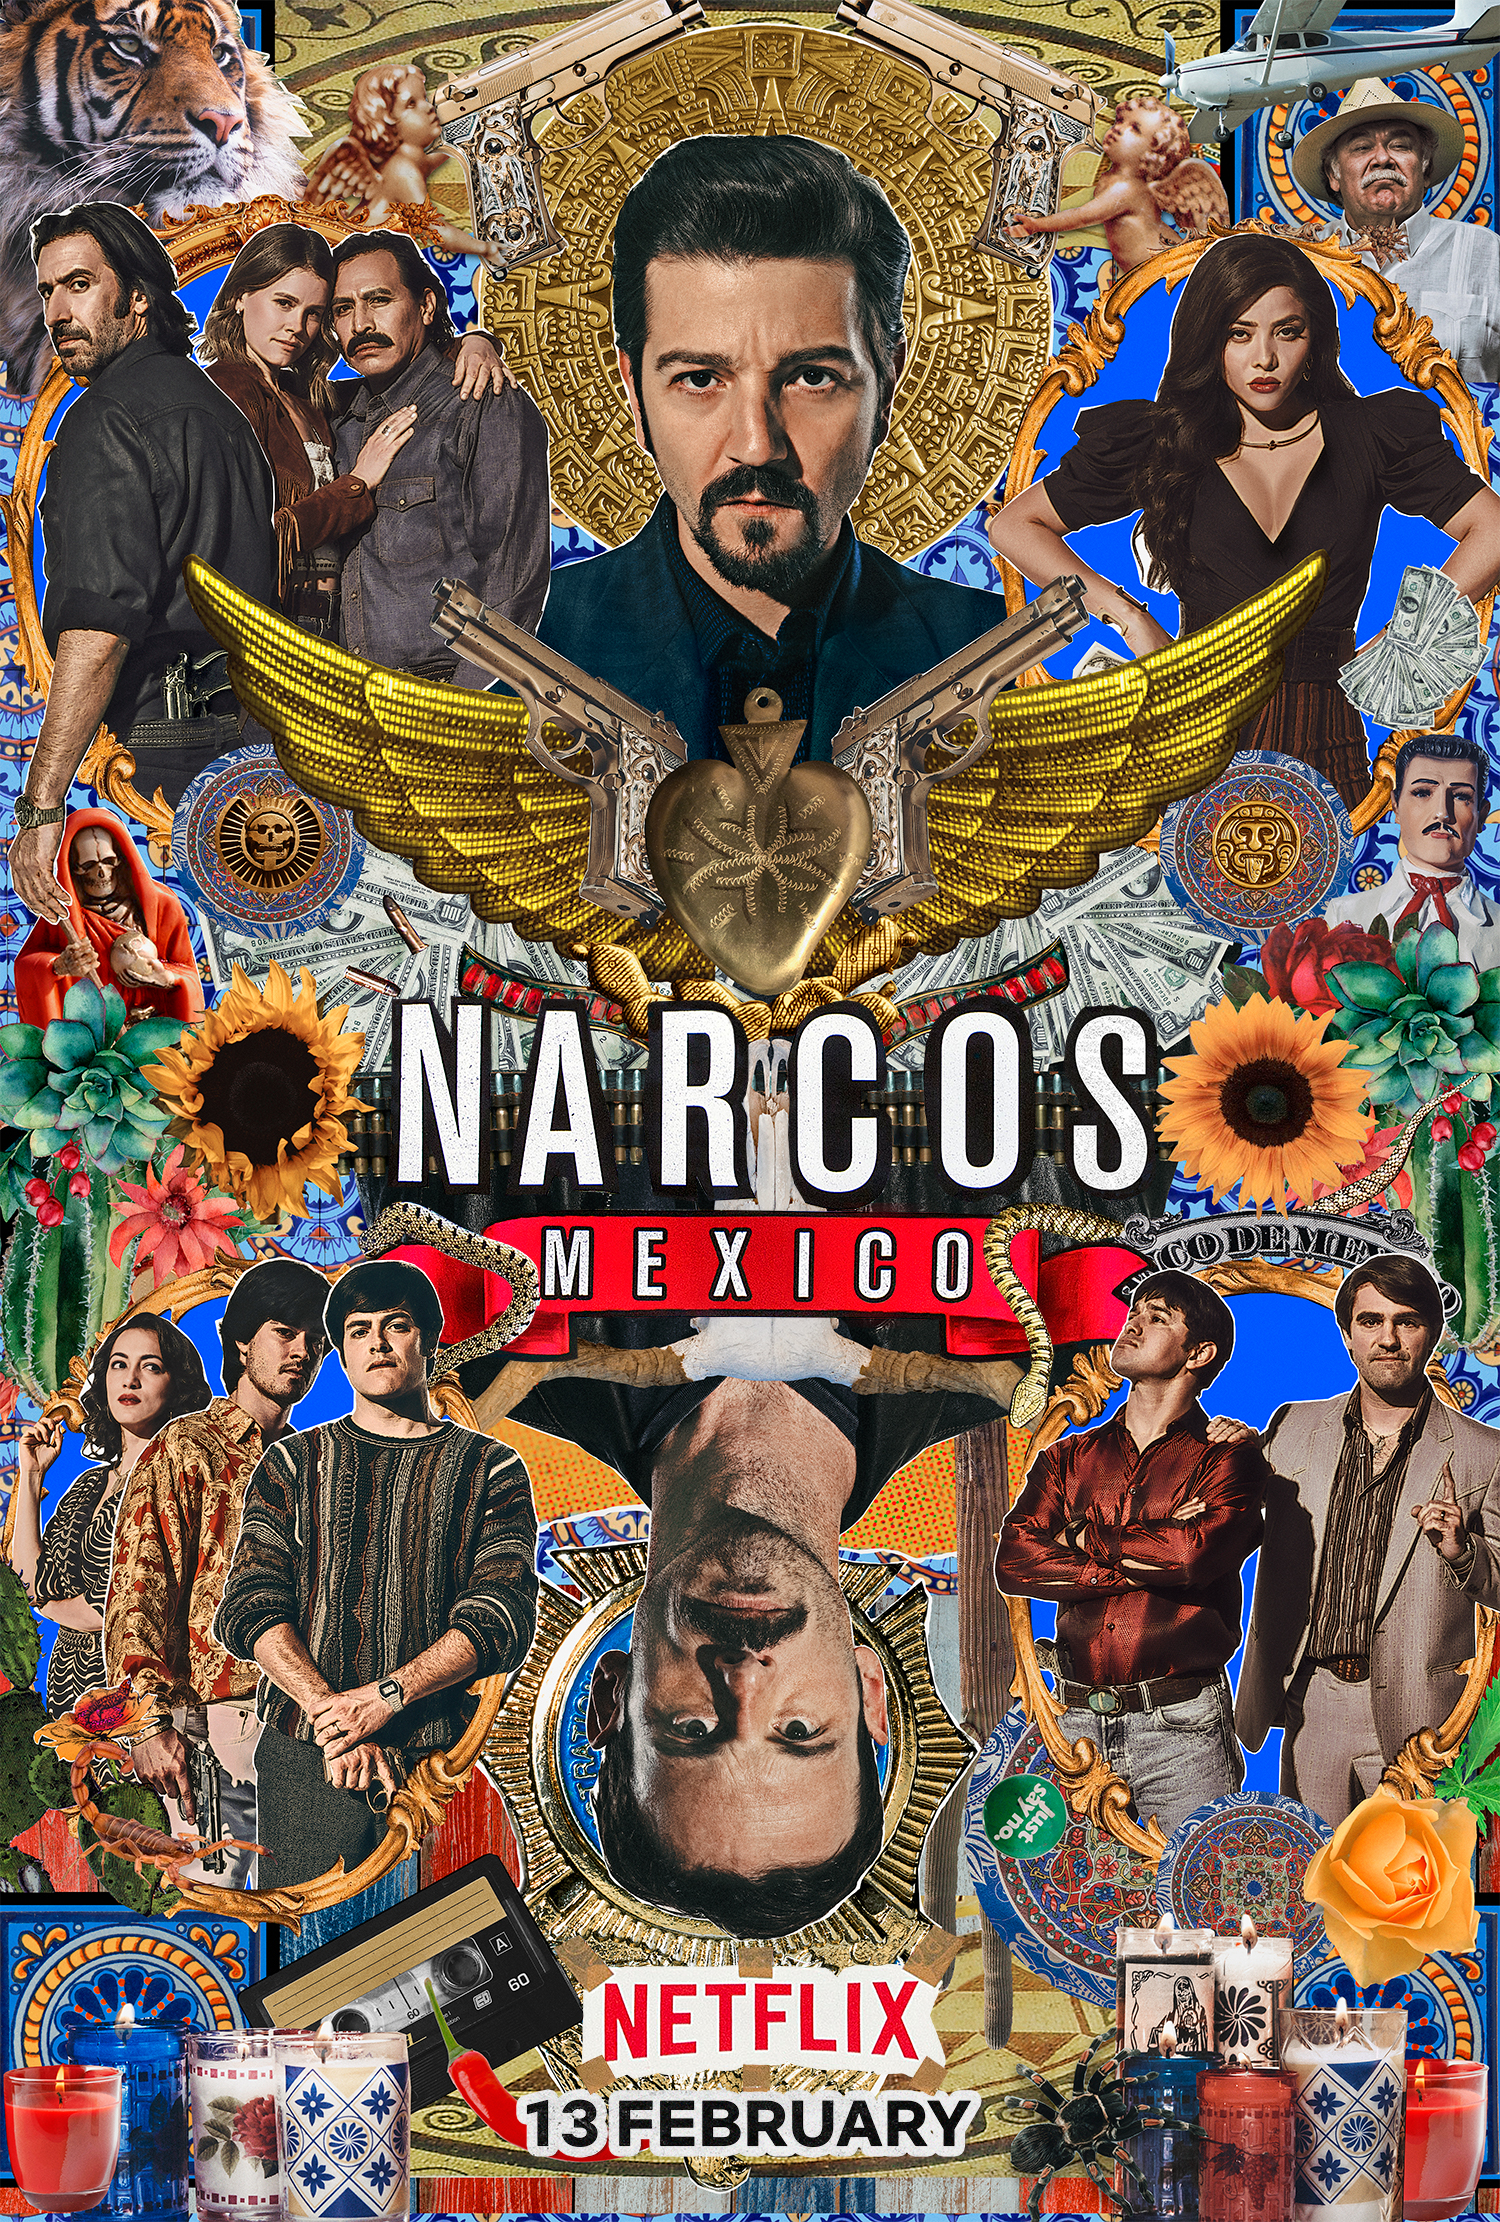 Narcos.Mexico.S02E05.GERMAN.DL.1080p.WEB.X264-FENDT